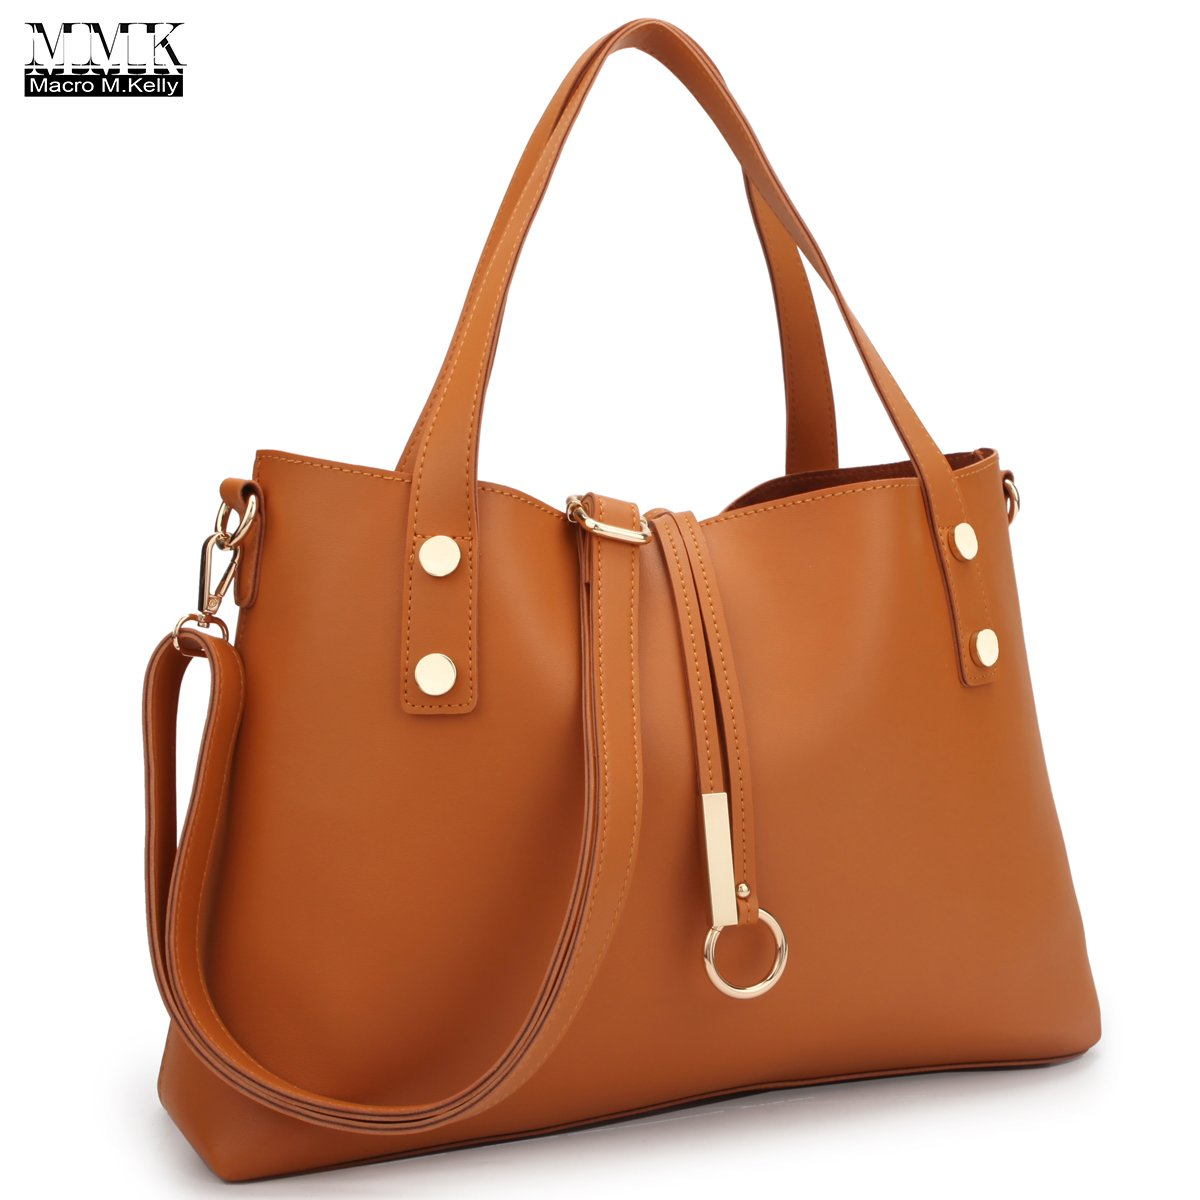 MMK Collection Newest 2 in 1 Spring and Summer Super Soft Solid Color PU Leather Large Crossbody Tote (3392) with Removable Free Flowery Bucket Bag Inside (Brown)